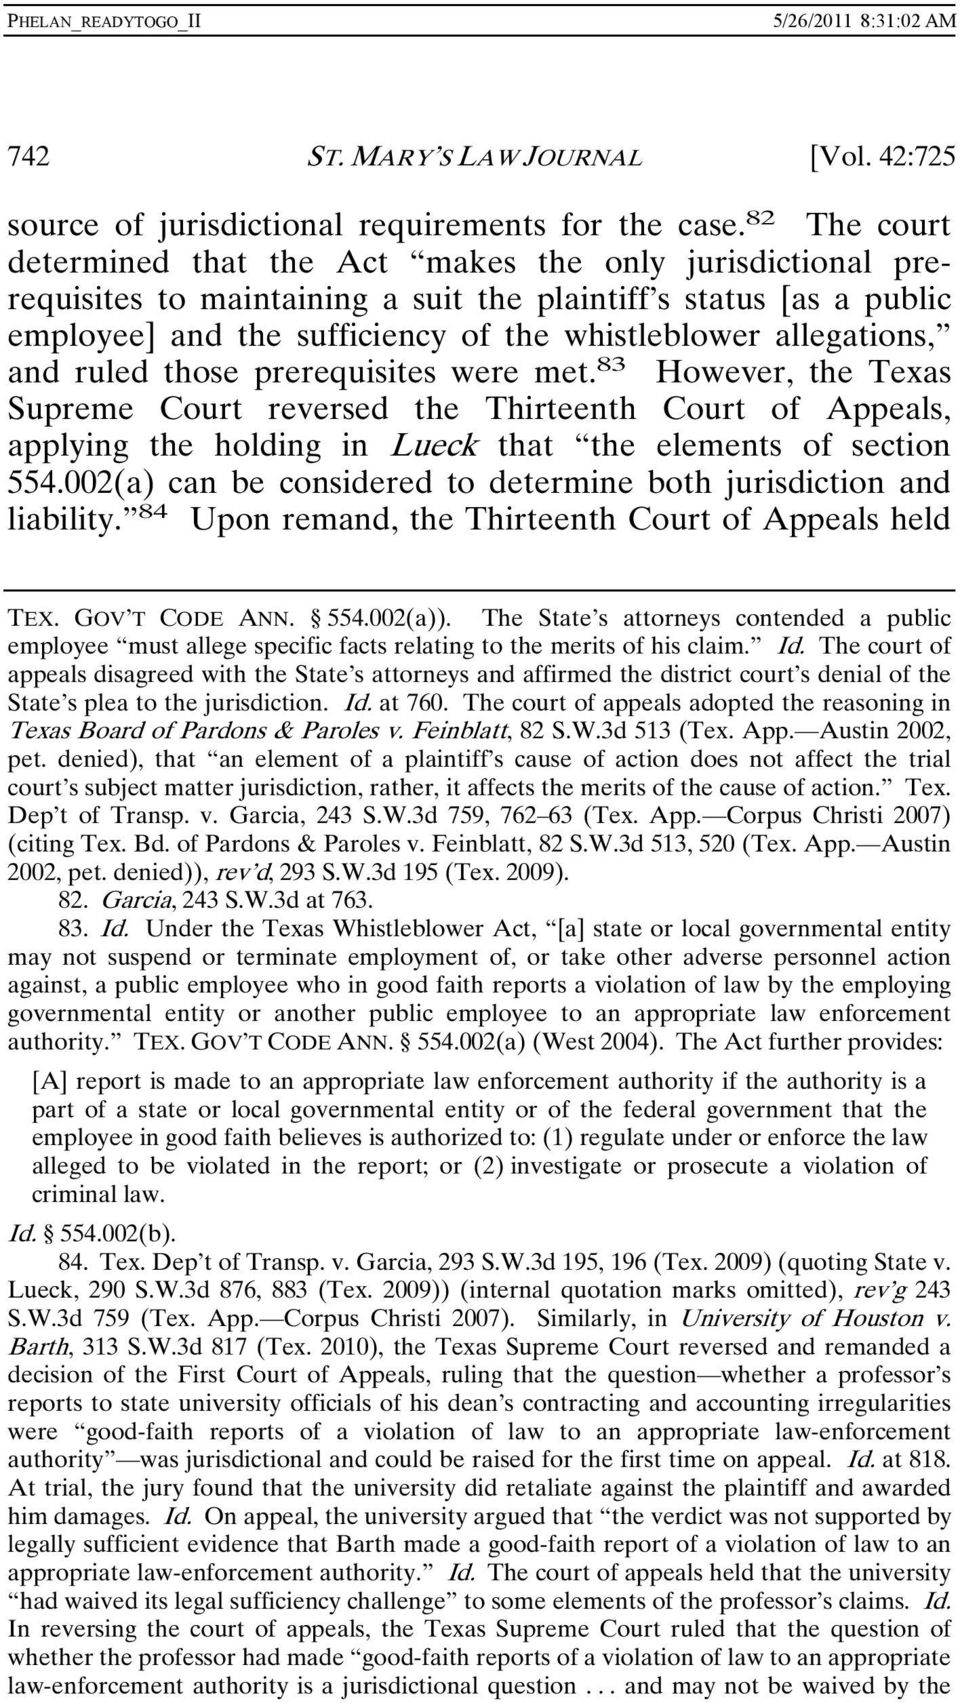 allegations, and ruled those prerequisites were met. 83 However, the Texas Supreme Court reversed the Thirteenth Court of Appeals, applying the holding in Lueck that the elements of section 554.